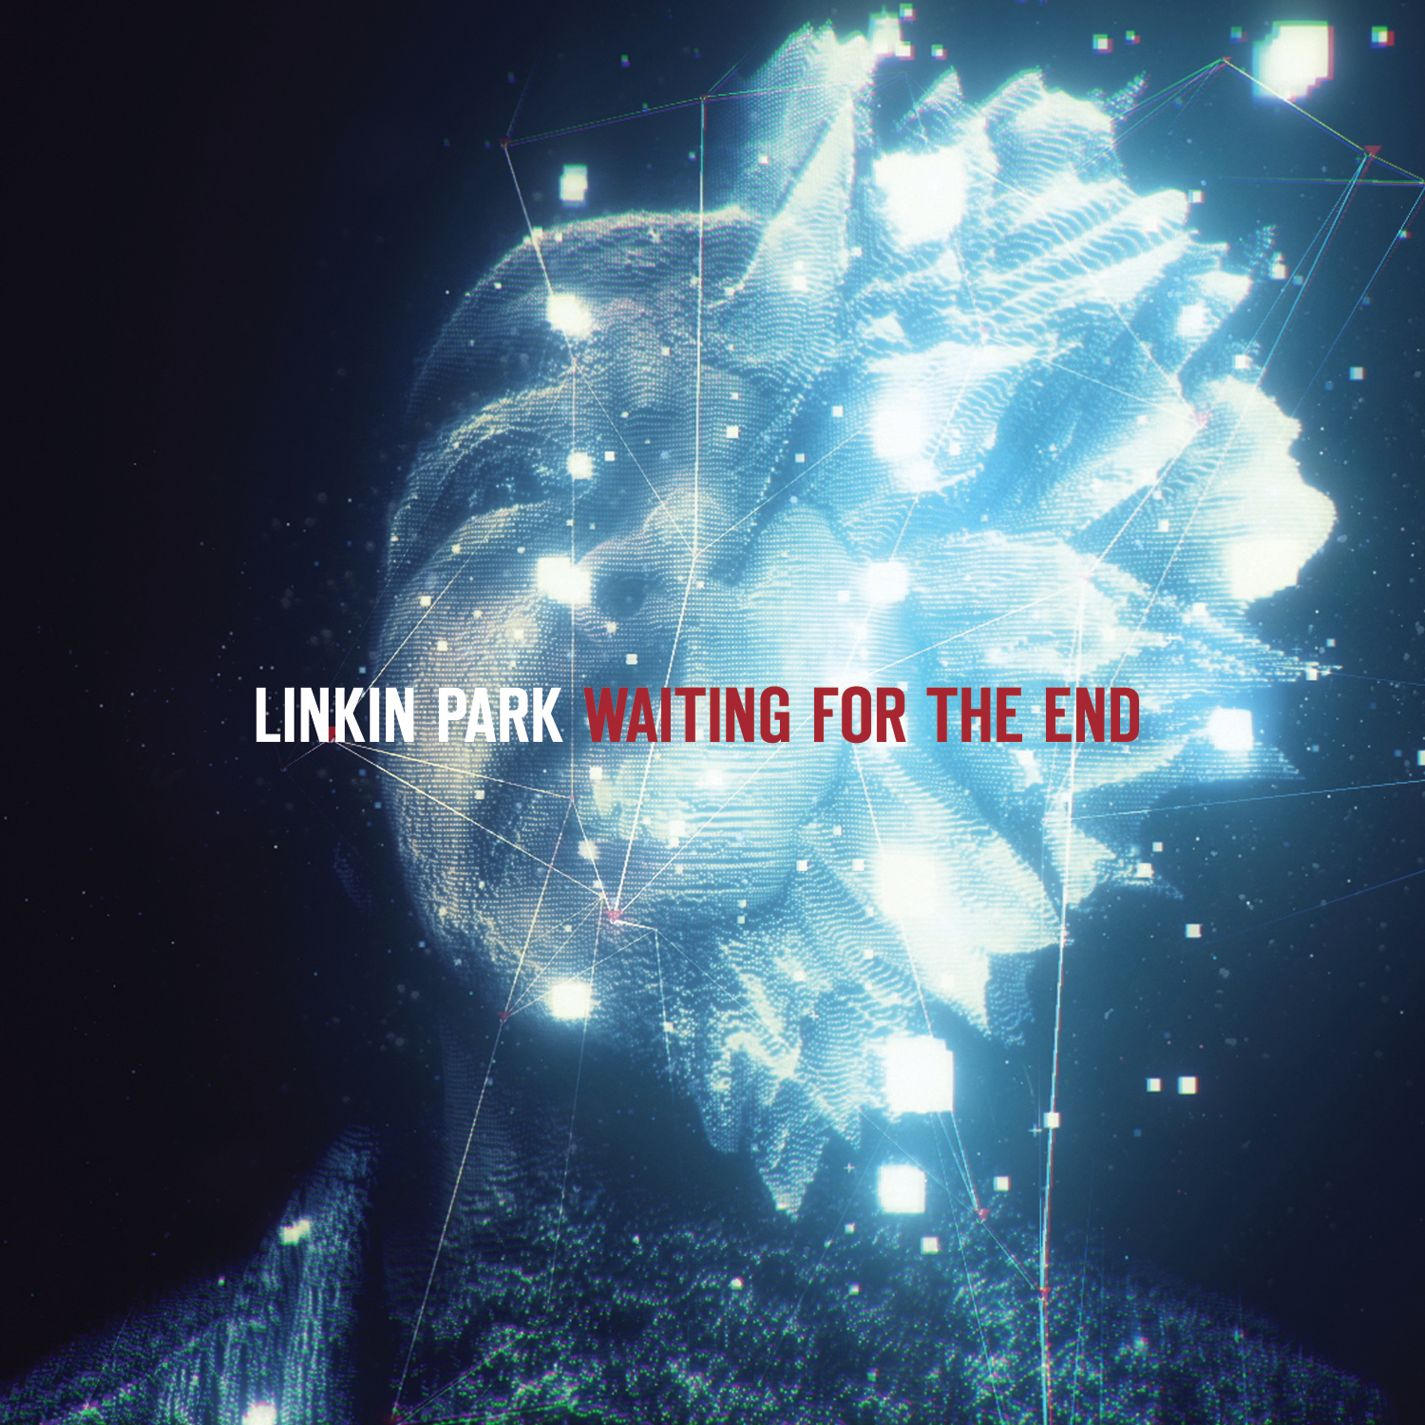 Linkin Park-Esperando o fim (Waiting For The End)